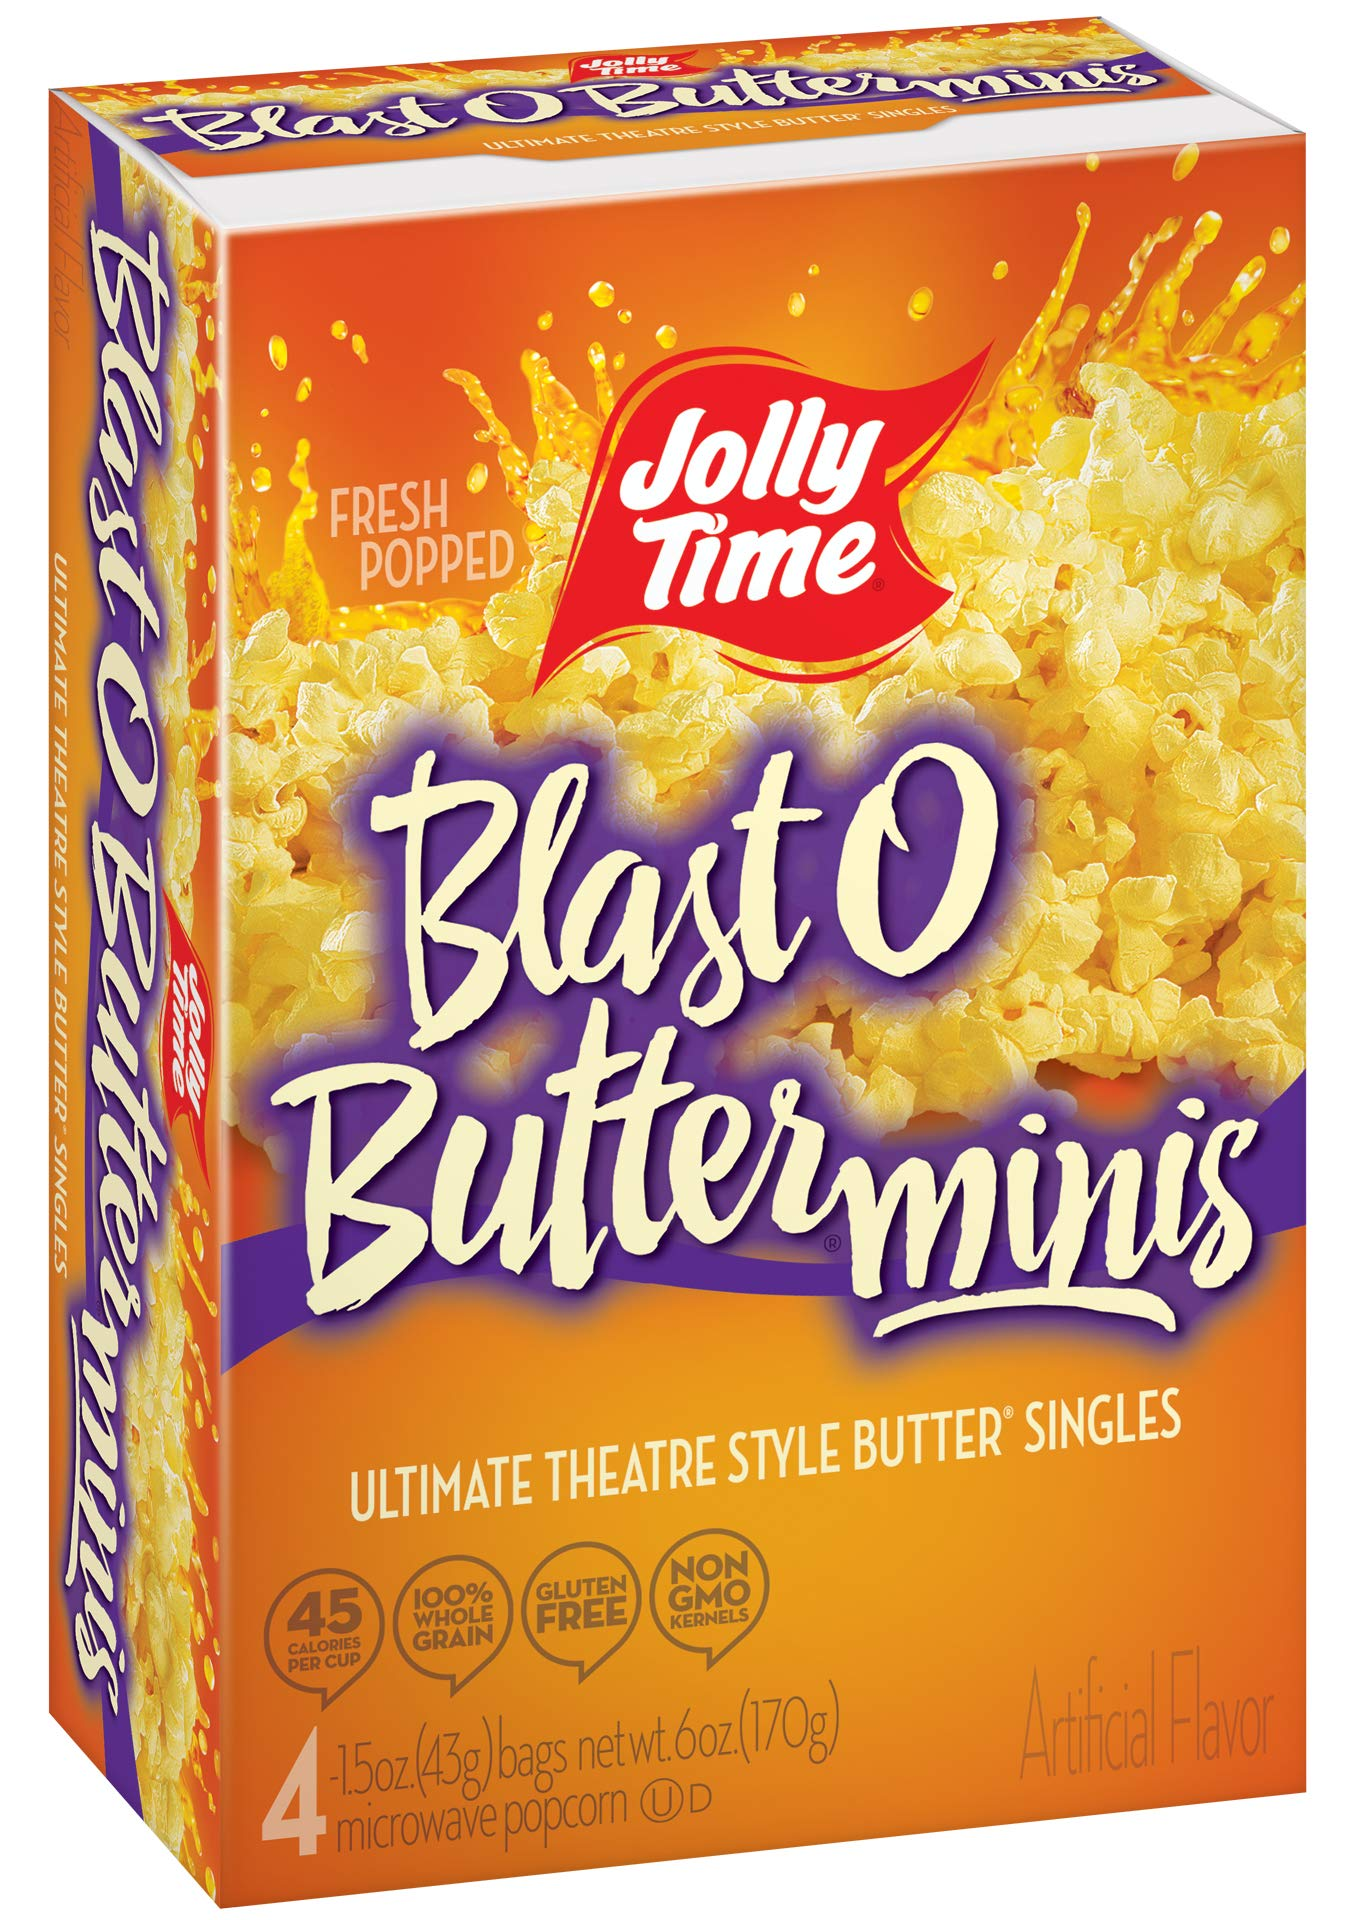 Jolly Time Blast O Butter Movie Theater Microwave Popcorn Mini Bags, 4-Count Boxes (Pack of 12) by Jolly Time (Image #4)